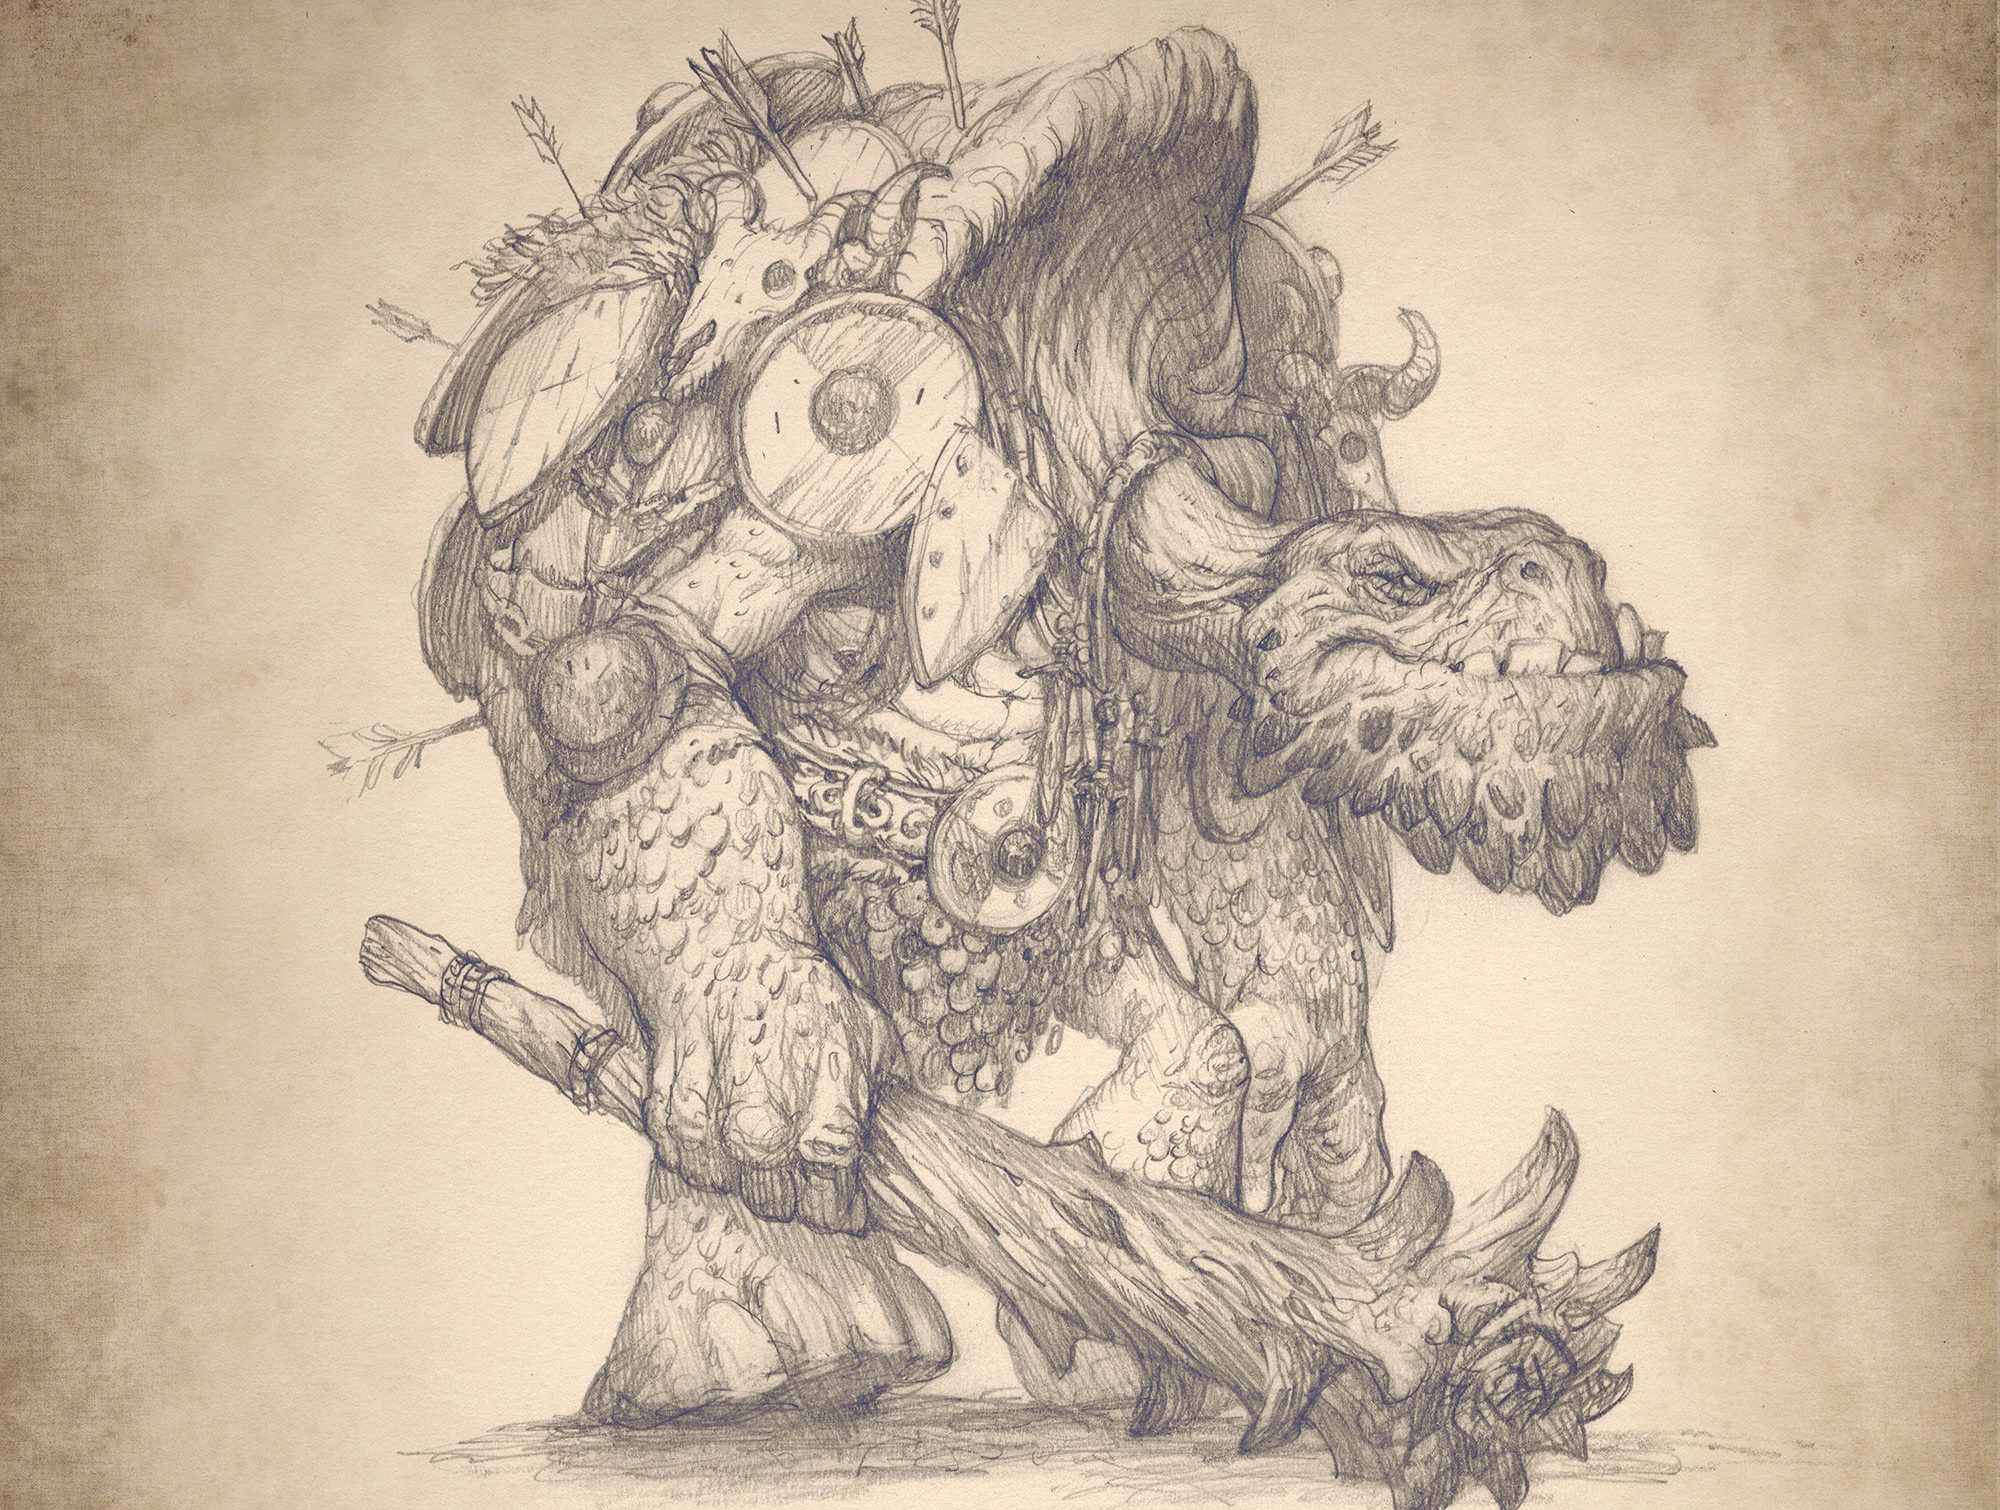 Pencil drawing of a turtle-like creature carrying a weapon and covered in shields